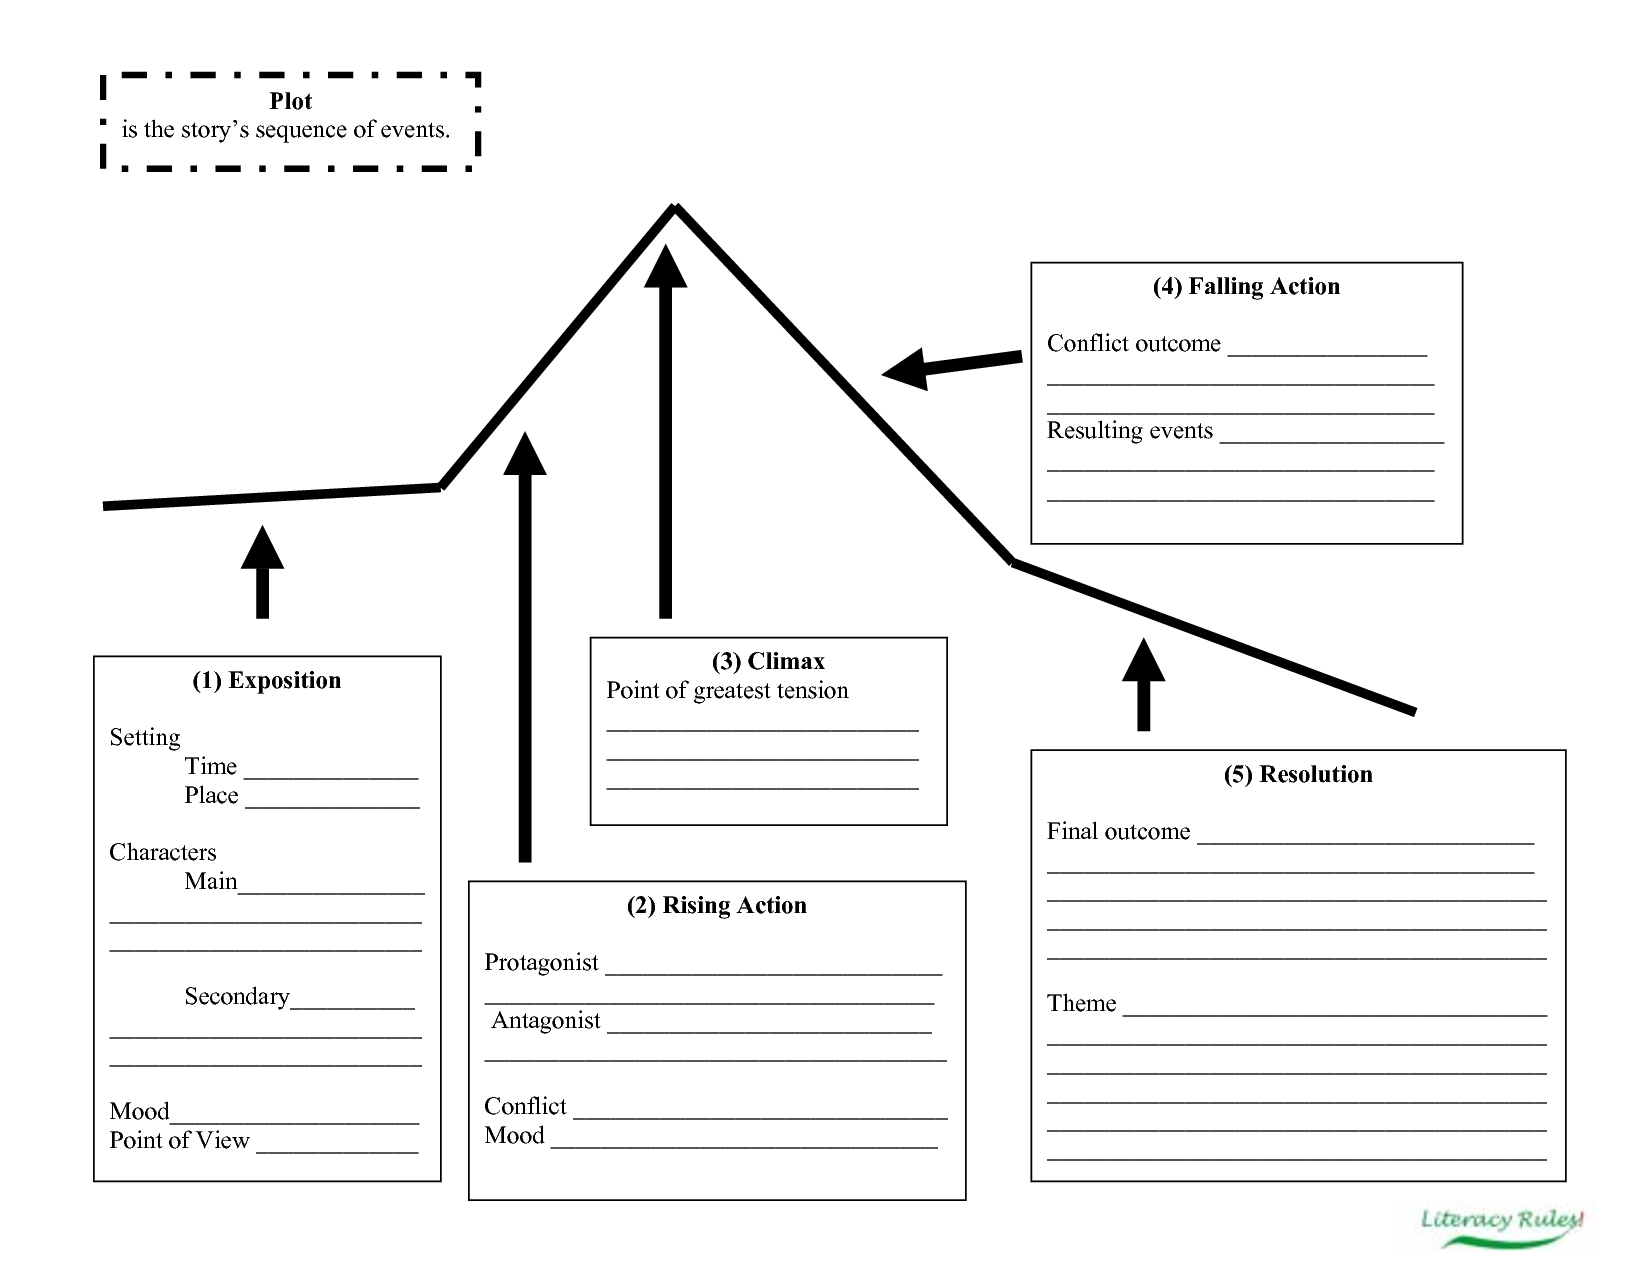 narrative essay graphic organizer 5th grade Download and read personal narrative graphic organizer 5th grade personal narrative graphic organizer 5th grade introducing a new hobby for other people may inspire.